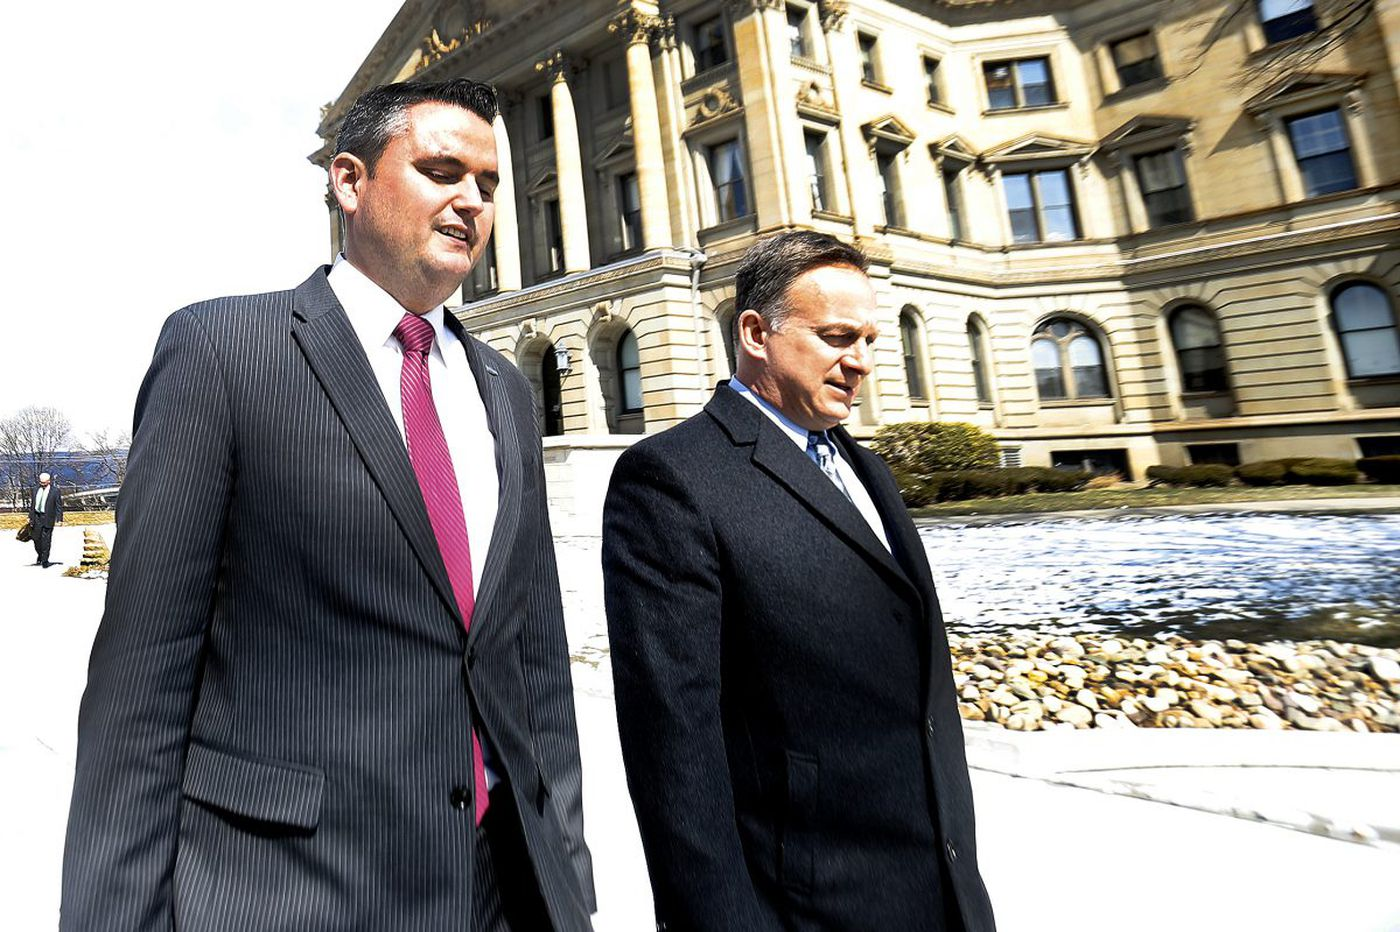 Pa. House report: Accusers of Delco Rep. Nick Miccarelli 'credible'